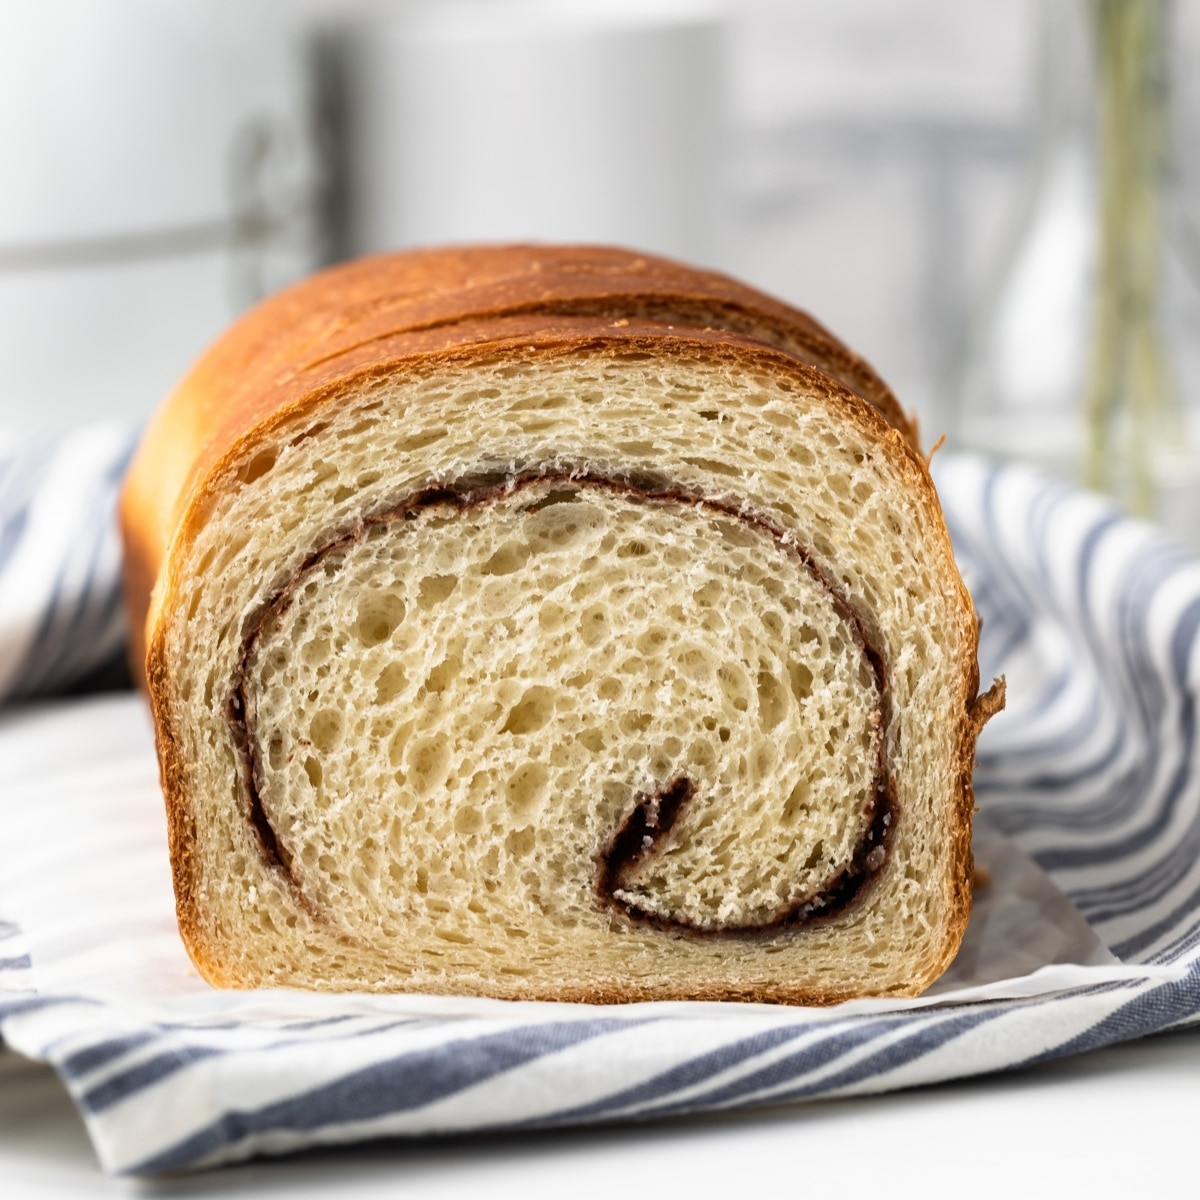 open face shot of cinnamon swirl bread